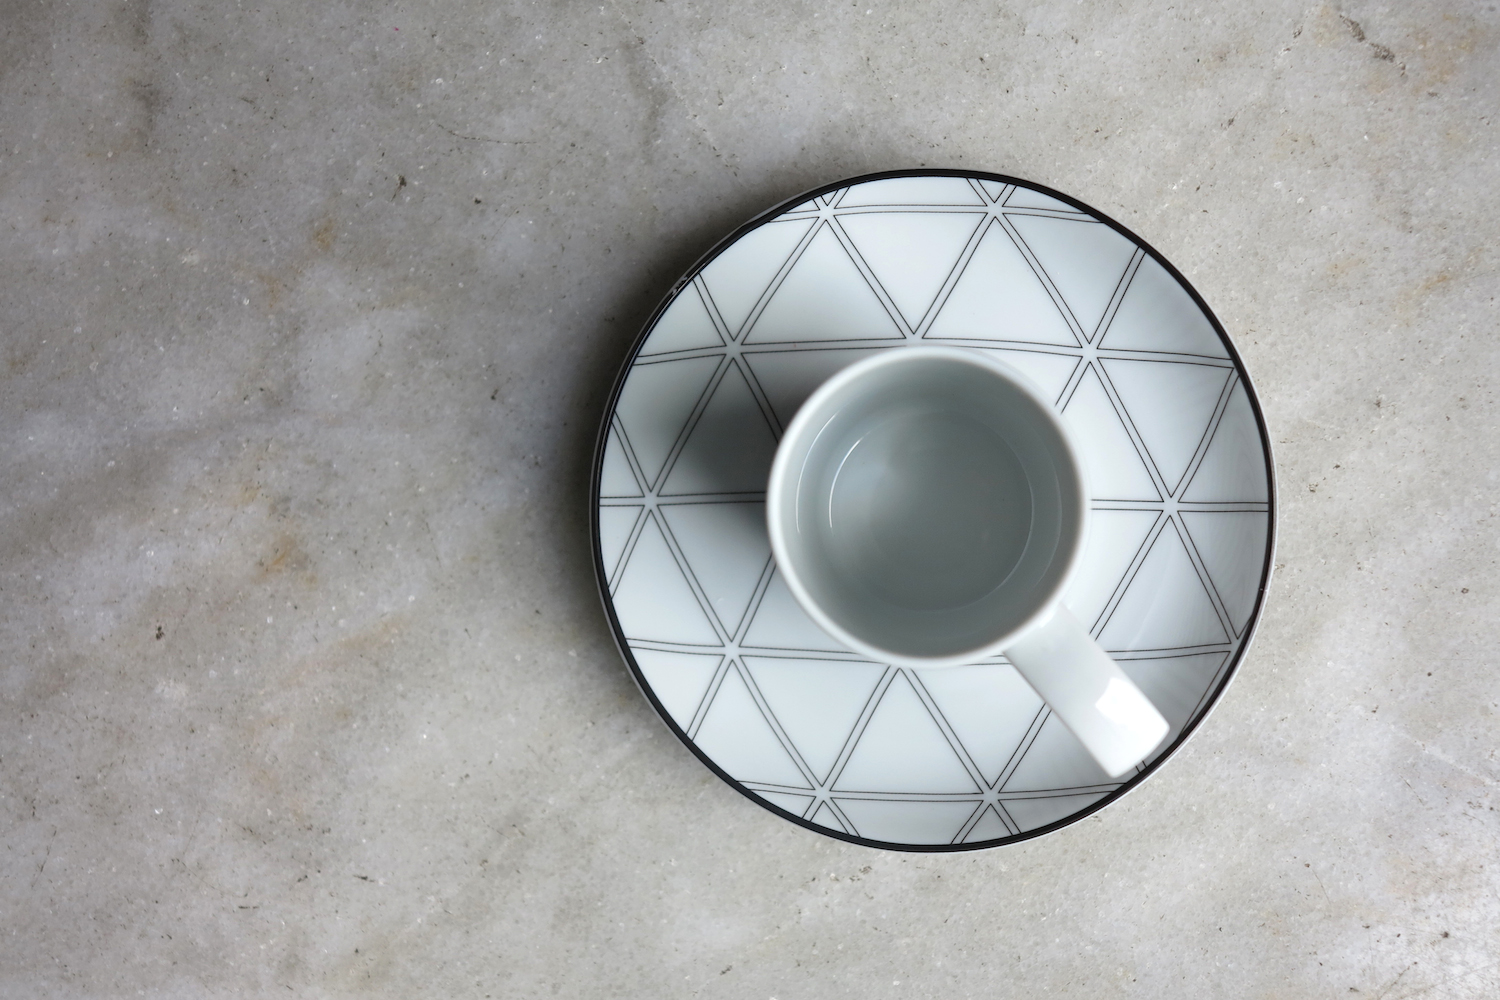 Orquestra porcelain tableware by david/nicolas for Vista Alegre | Flodeau